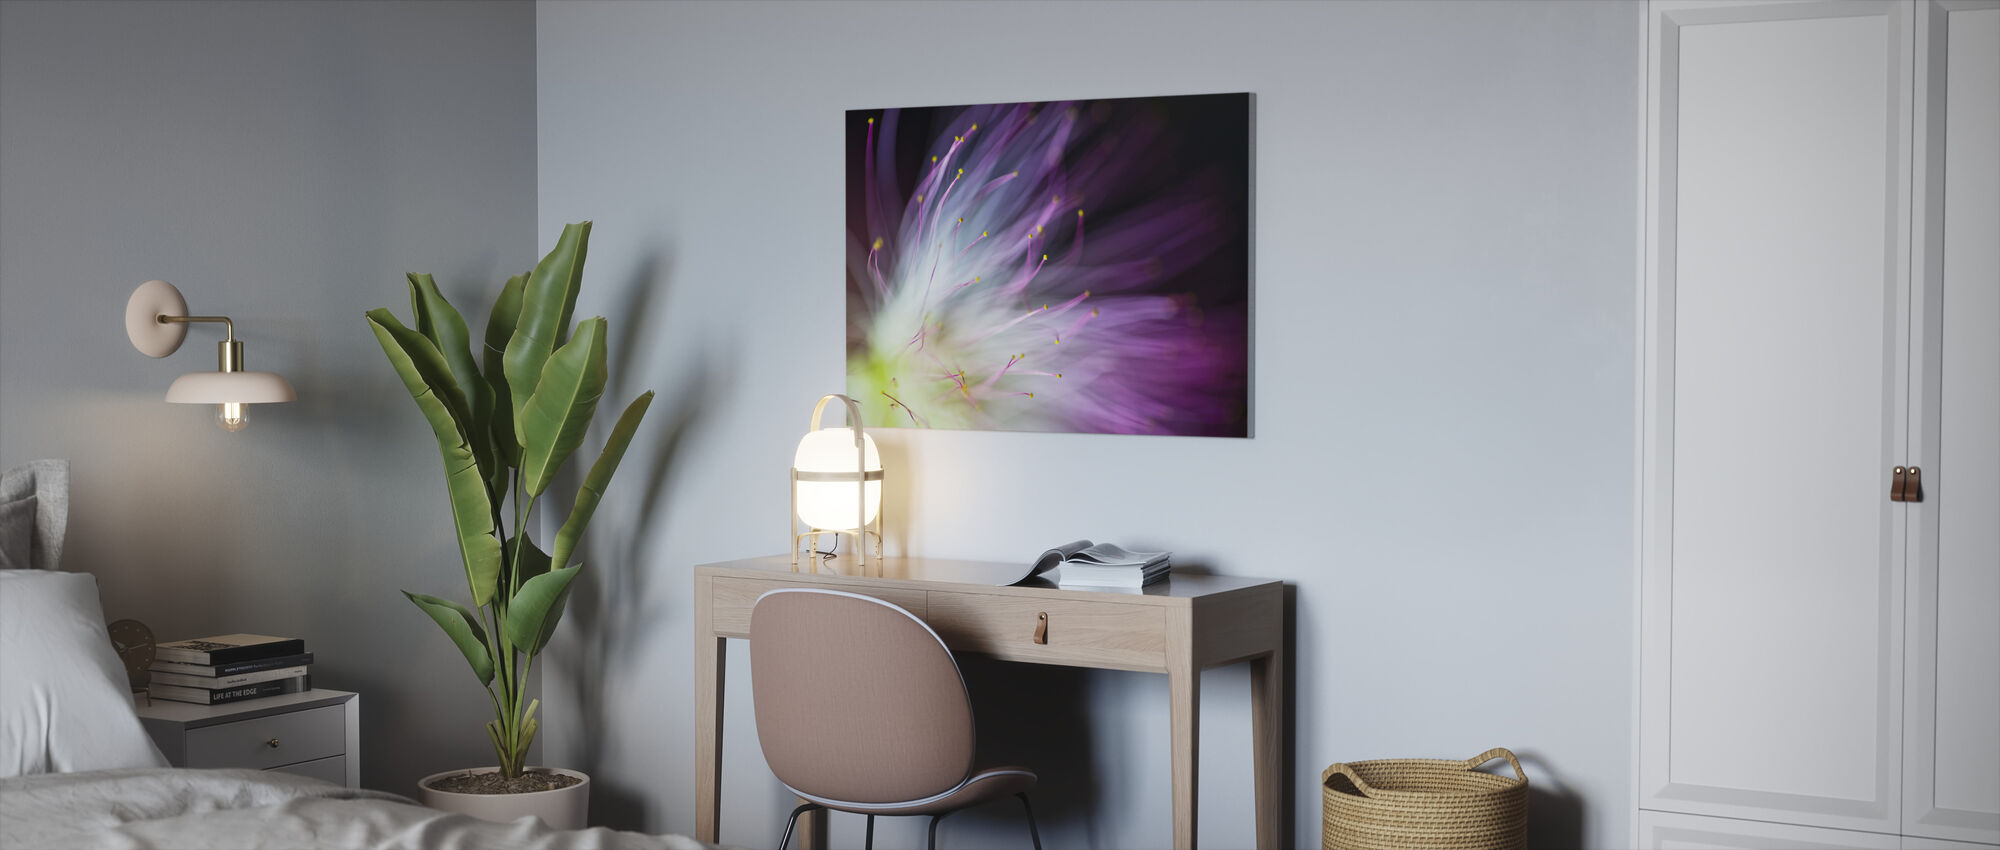 Will o he Wisp - Canvas print - Office